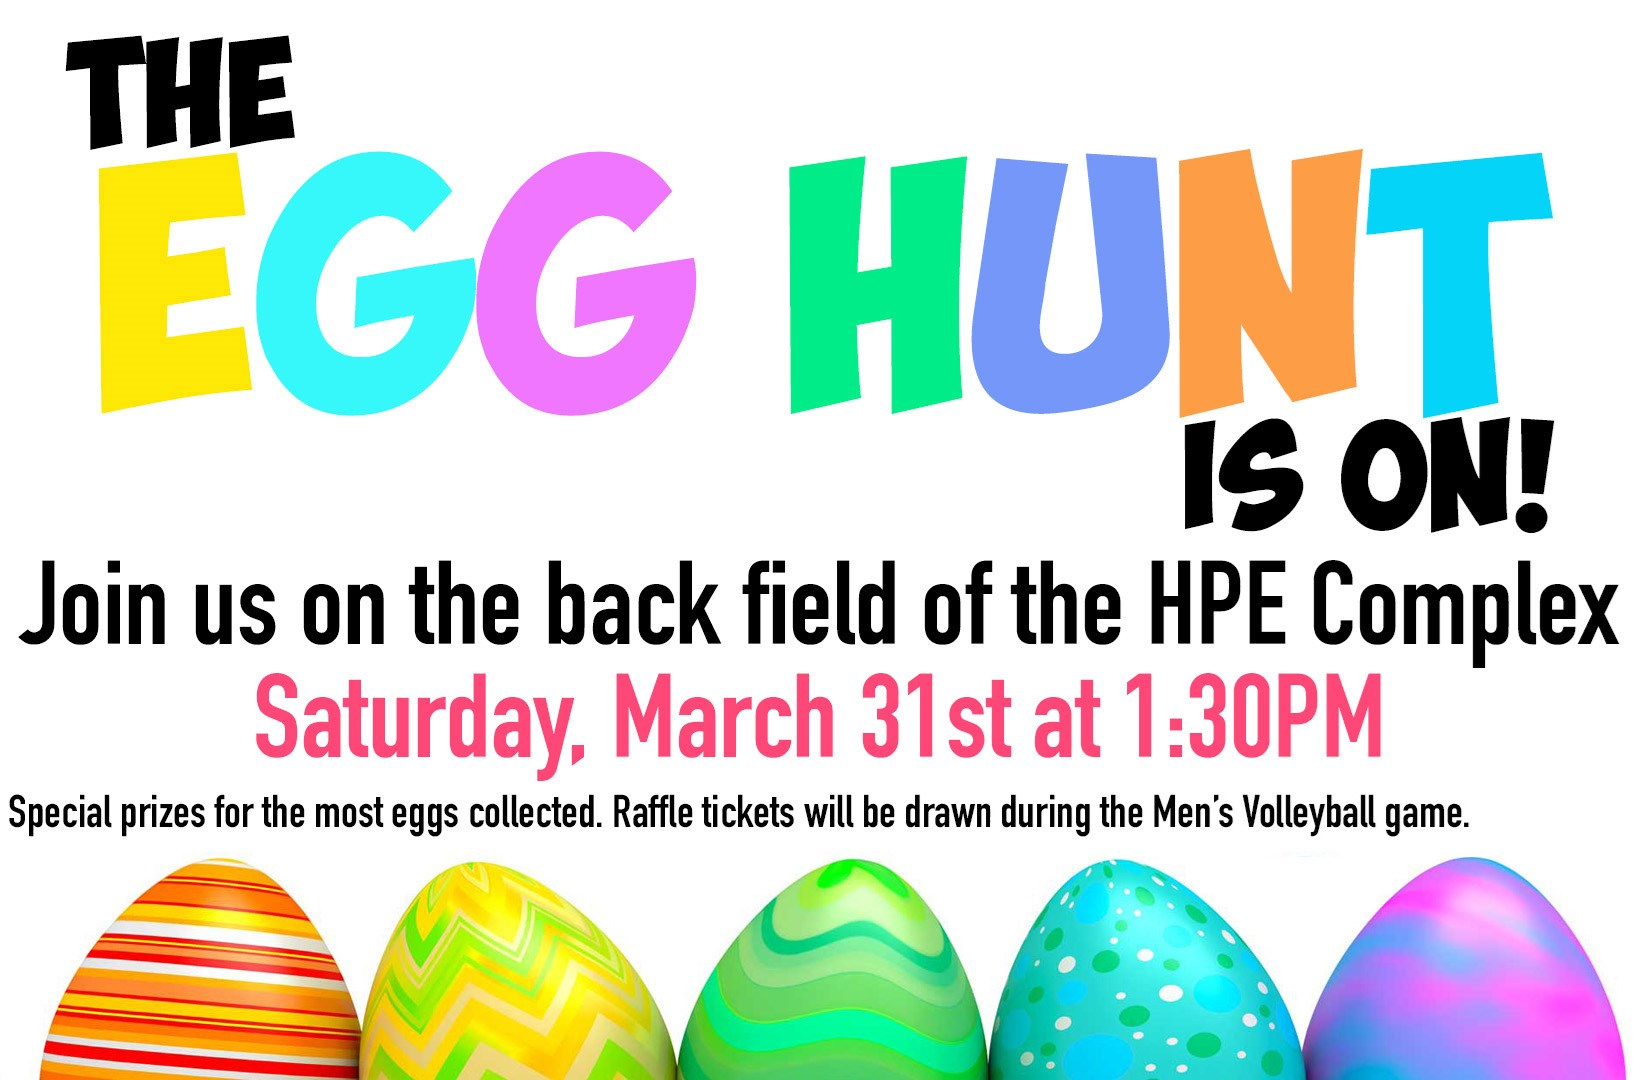 York Athletics To Hold Easter Egg Hunt March 31 Prizes To Be Given